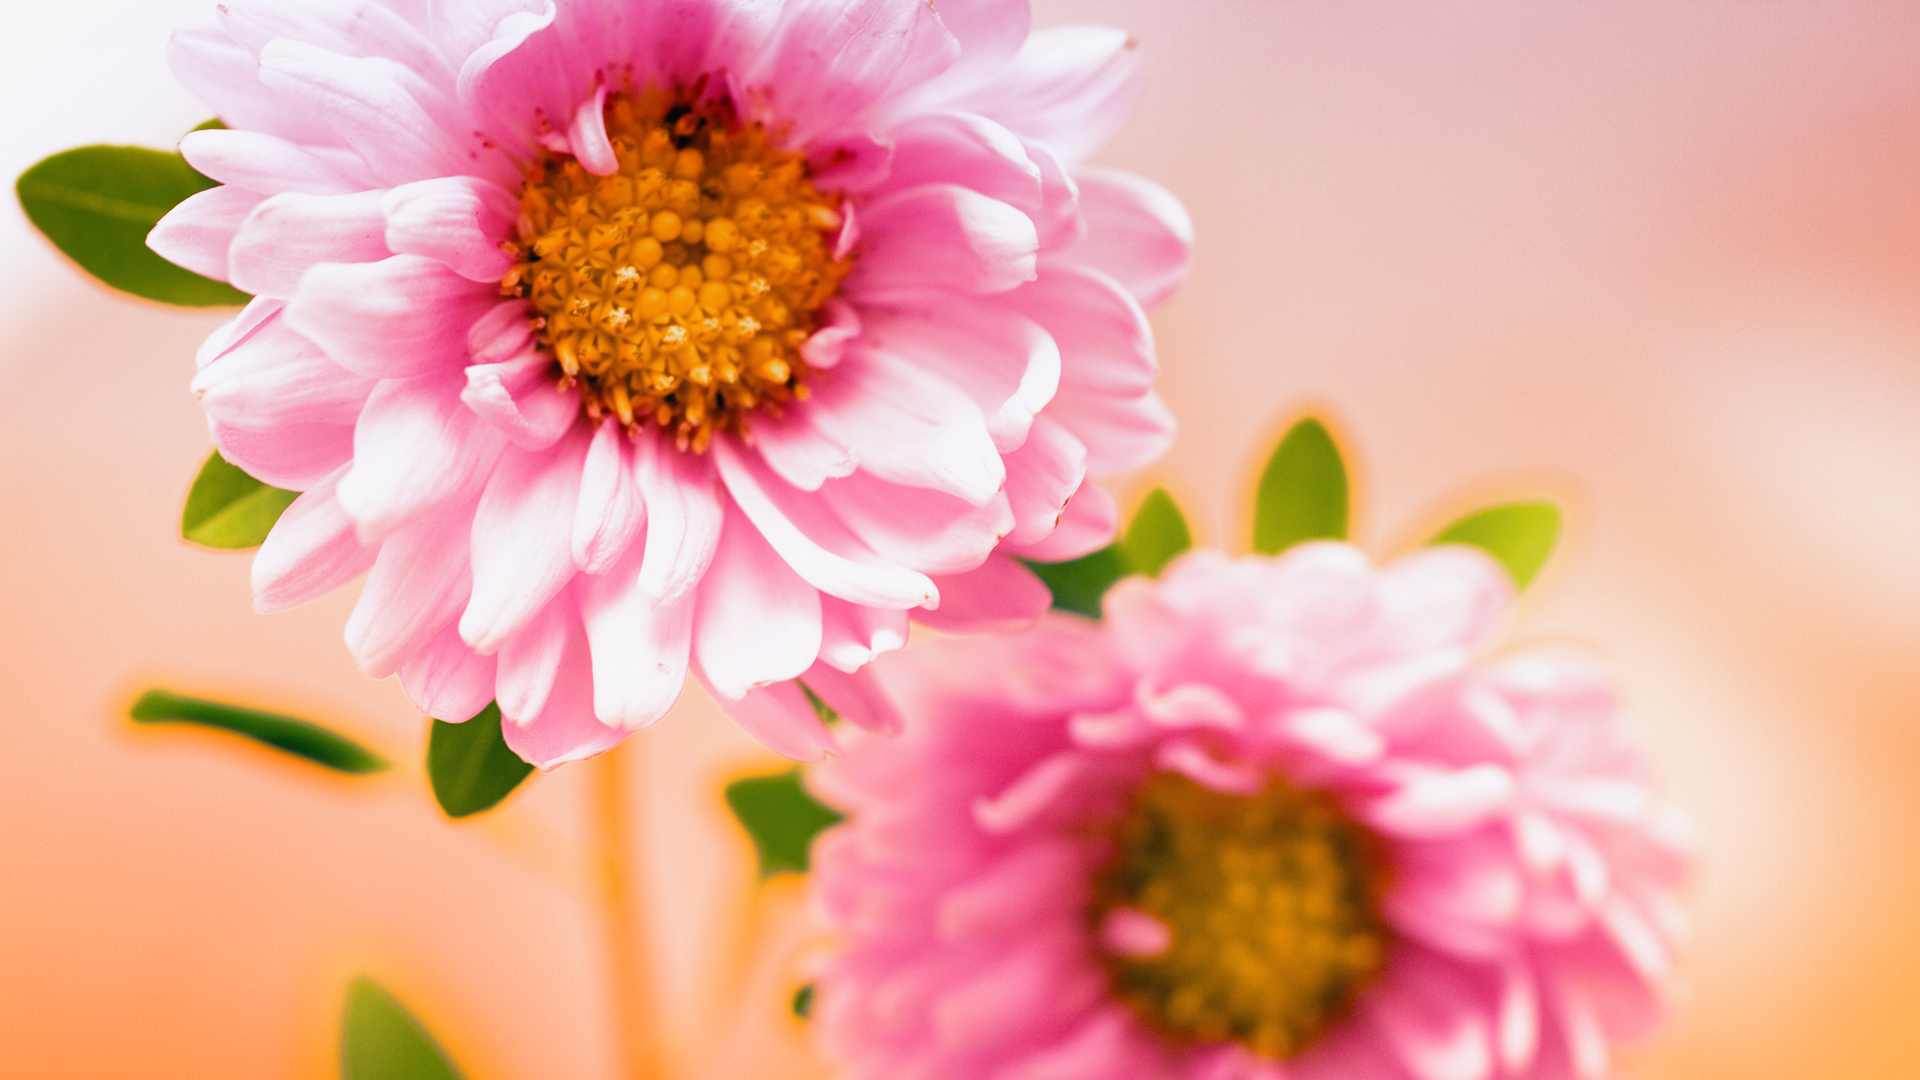 Pink Floral Wallpapers HD Wallpapers 1920x1080